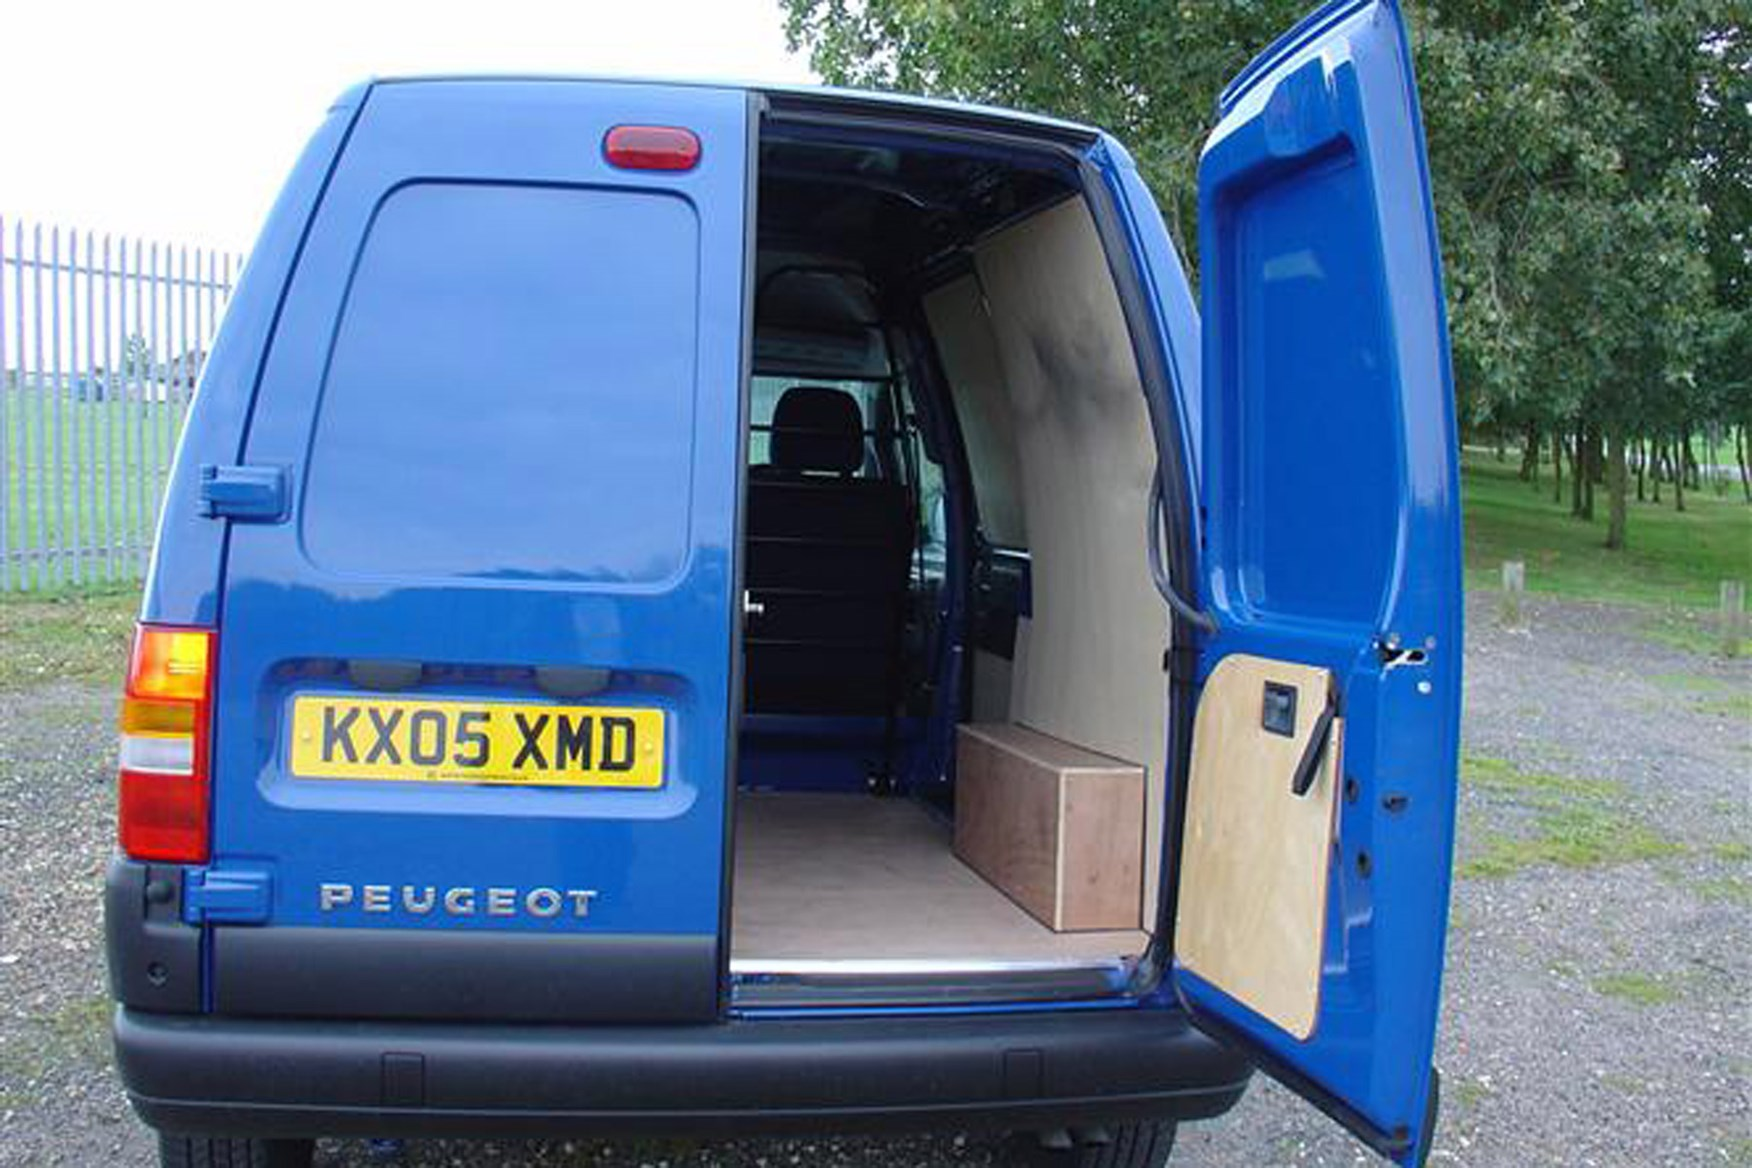 Peugeot Expert review on Parkers Vans - load area access